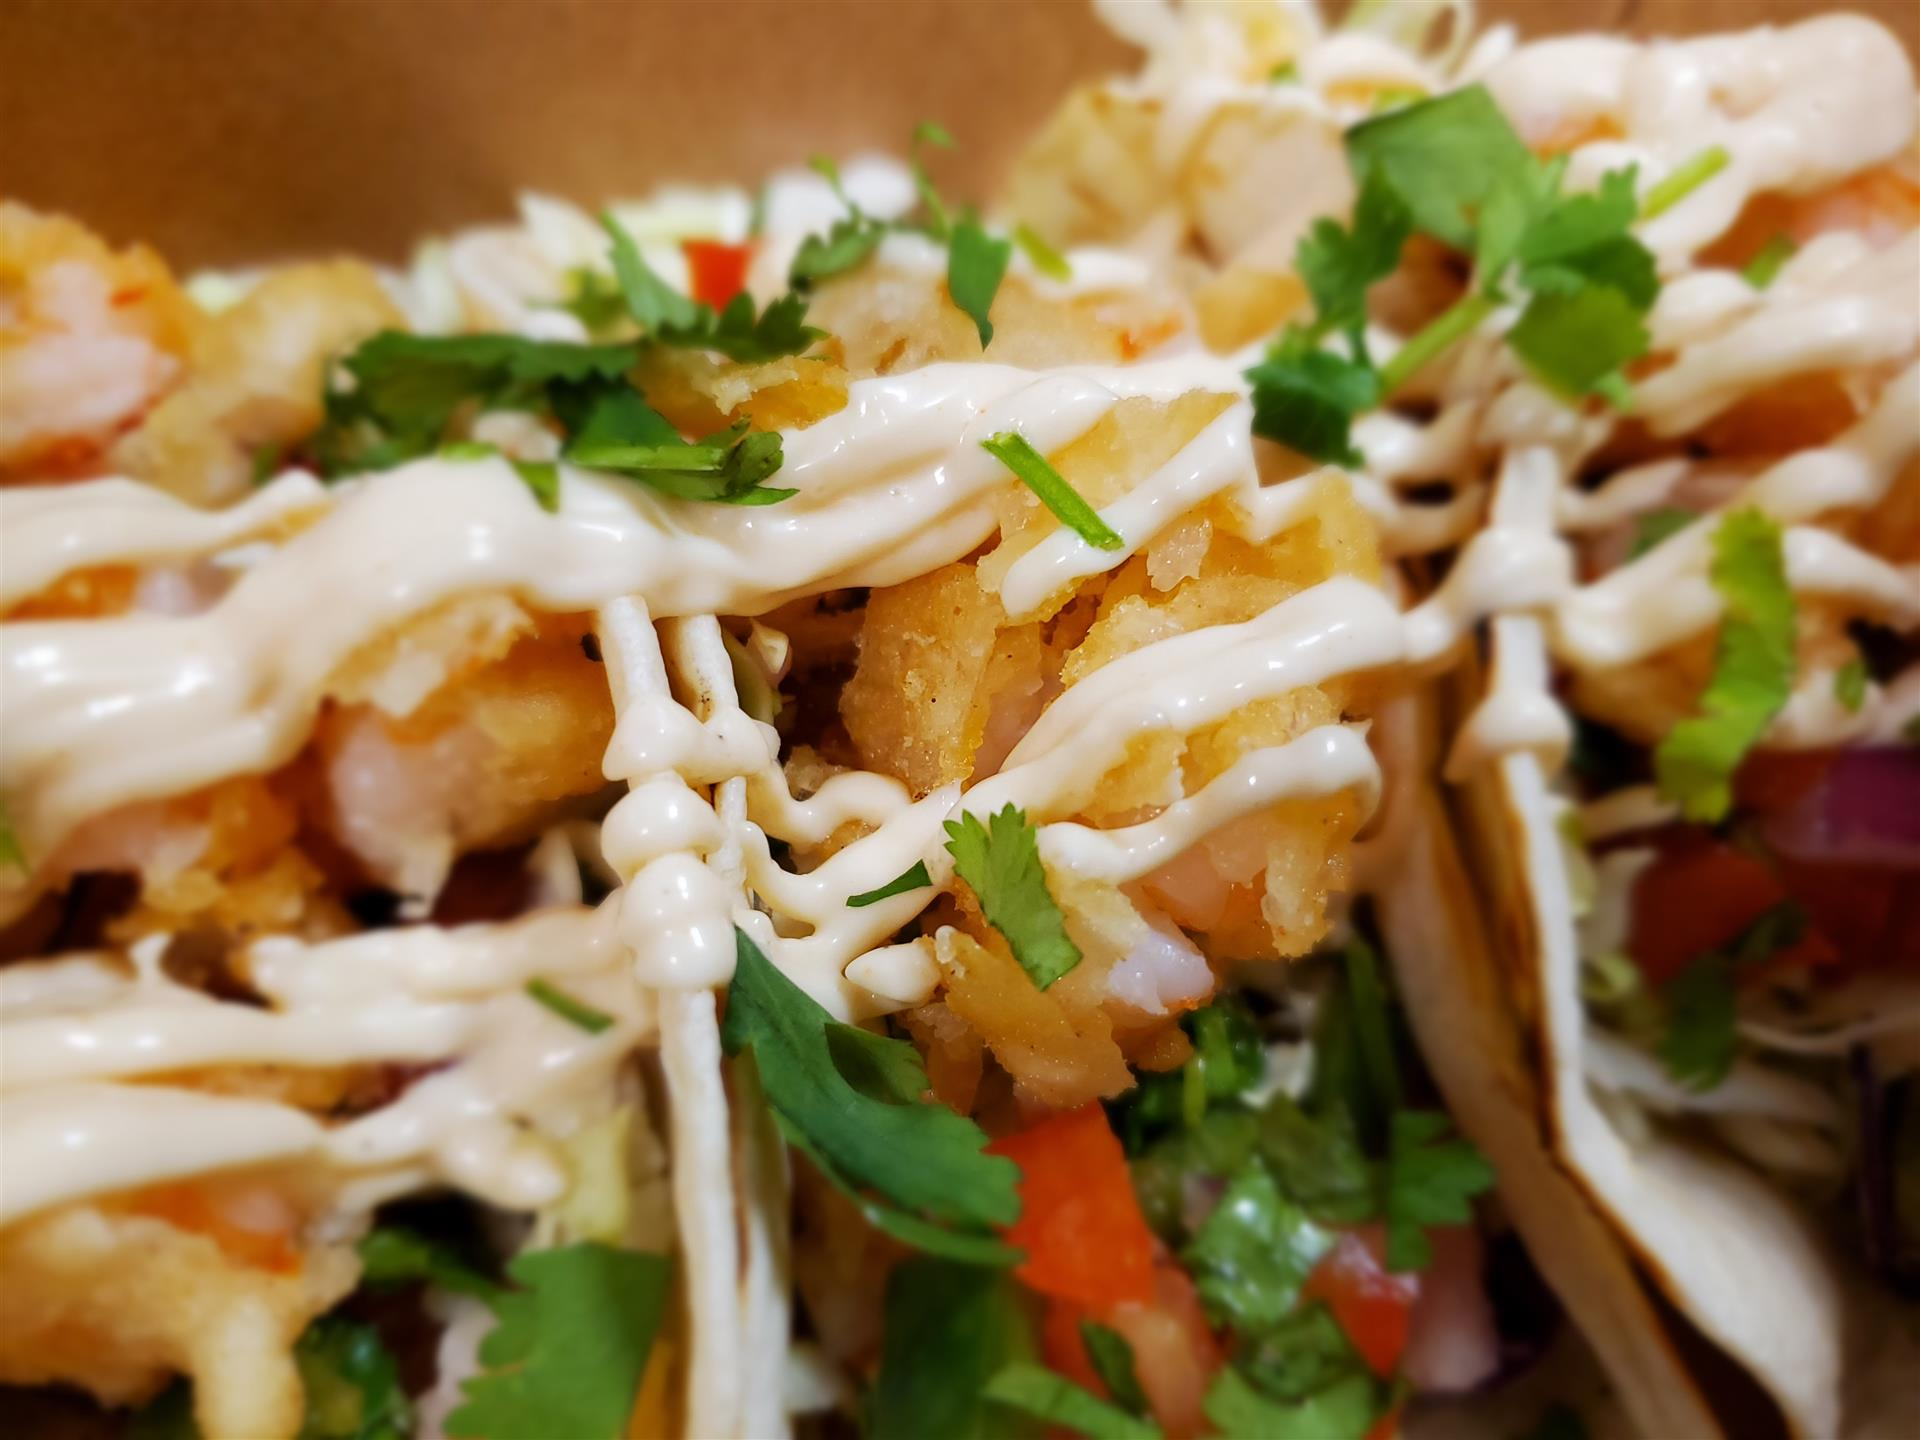 fried fish tacos, topped with salsa, cilantro, and aioli